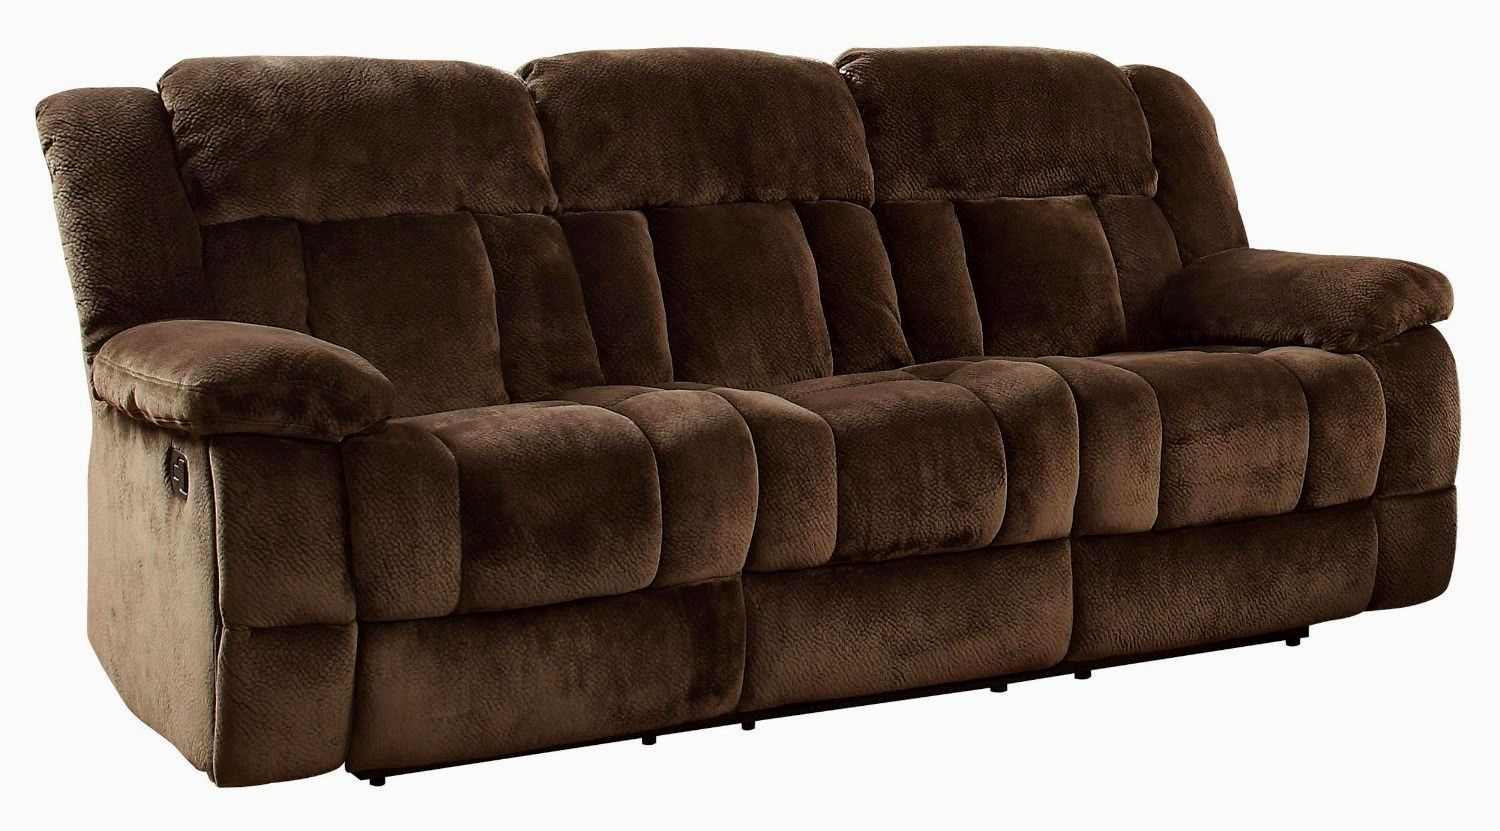 best cheap leather sofa picture-Top Cheap Leather sofa Image